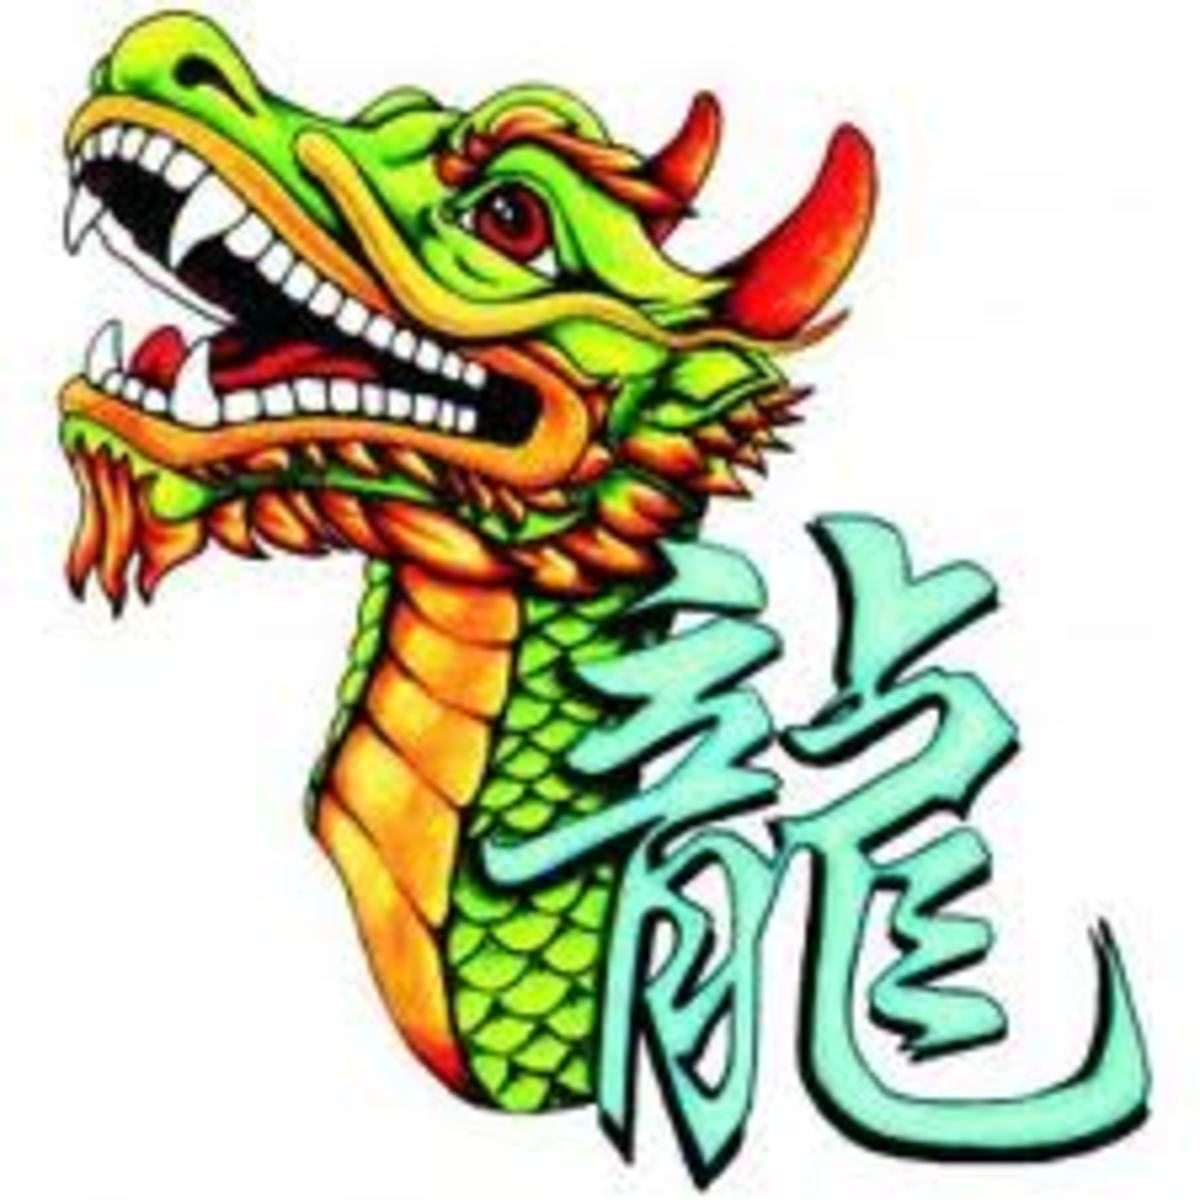 The dragon is part of the Chinese zodiac.